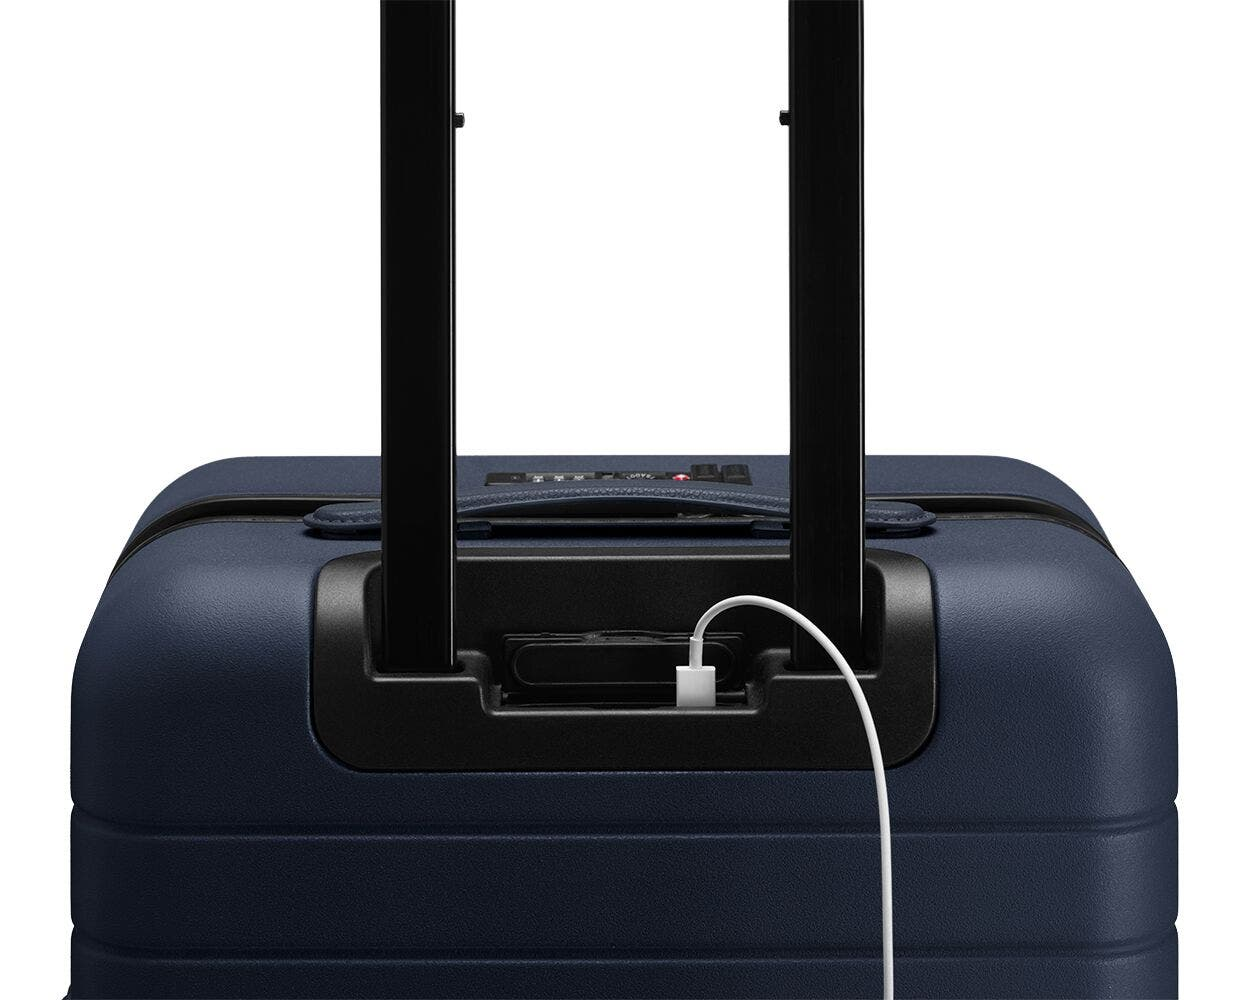 Video showing a finger pressing the battery to eject it from The Bigger Carry-On with Pocket in Navy